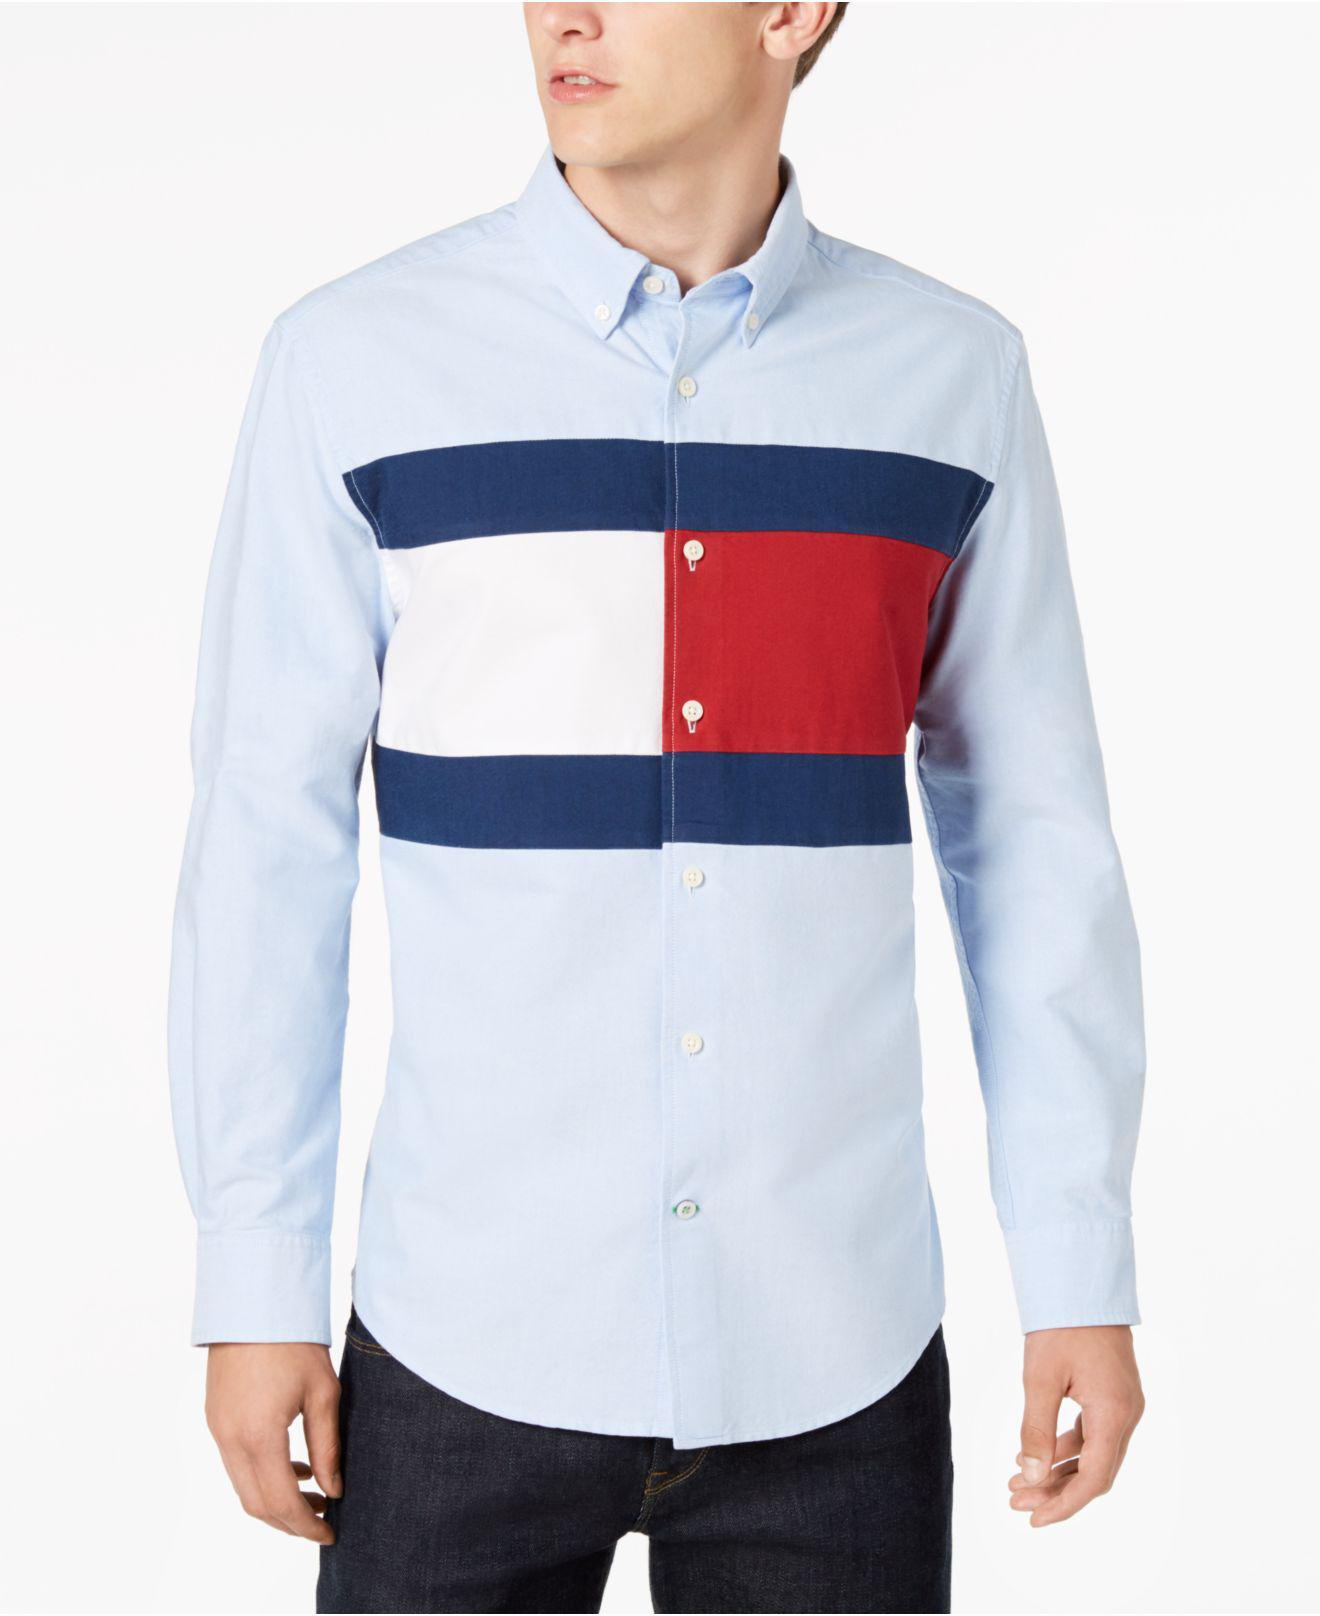 86935481 Tommy Hilfiger Pieced New England Colorblocked Custom Fit Shirt ...